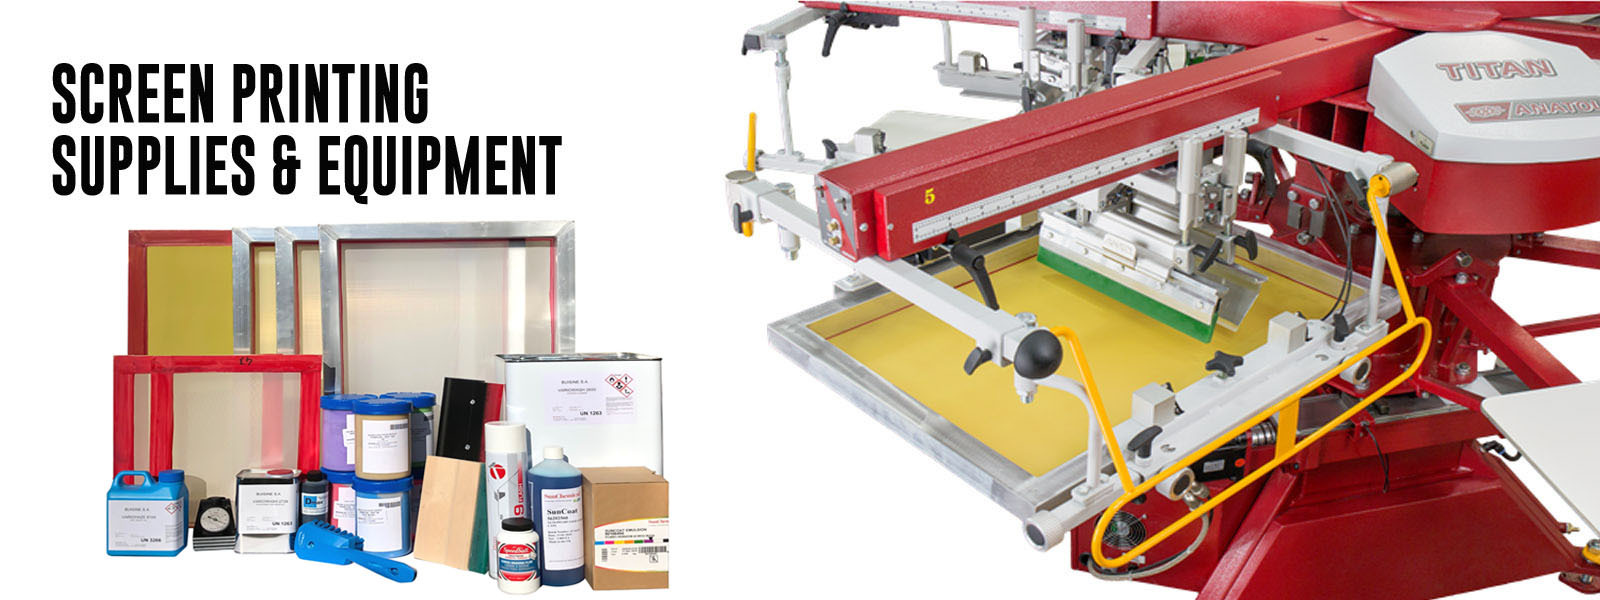 Screen printing and digital machine and supplies